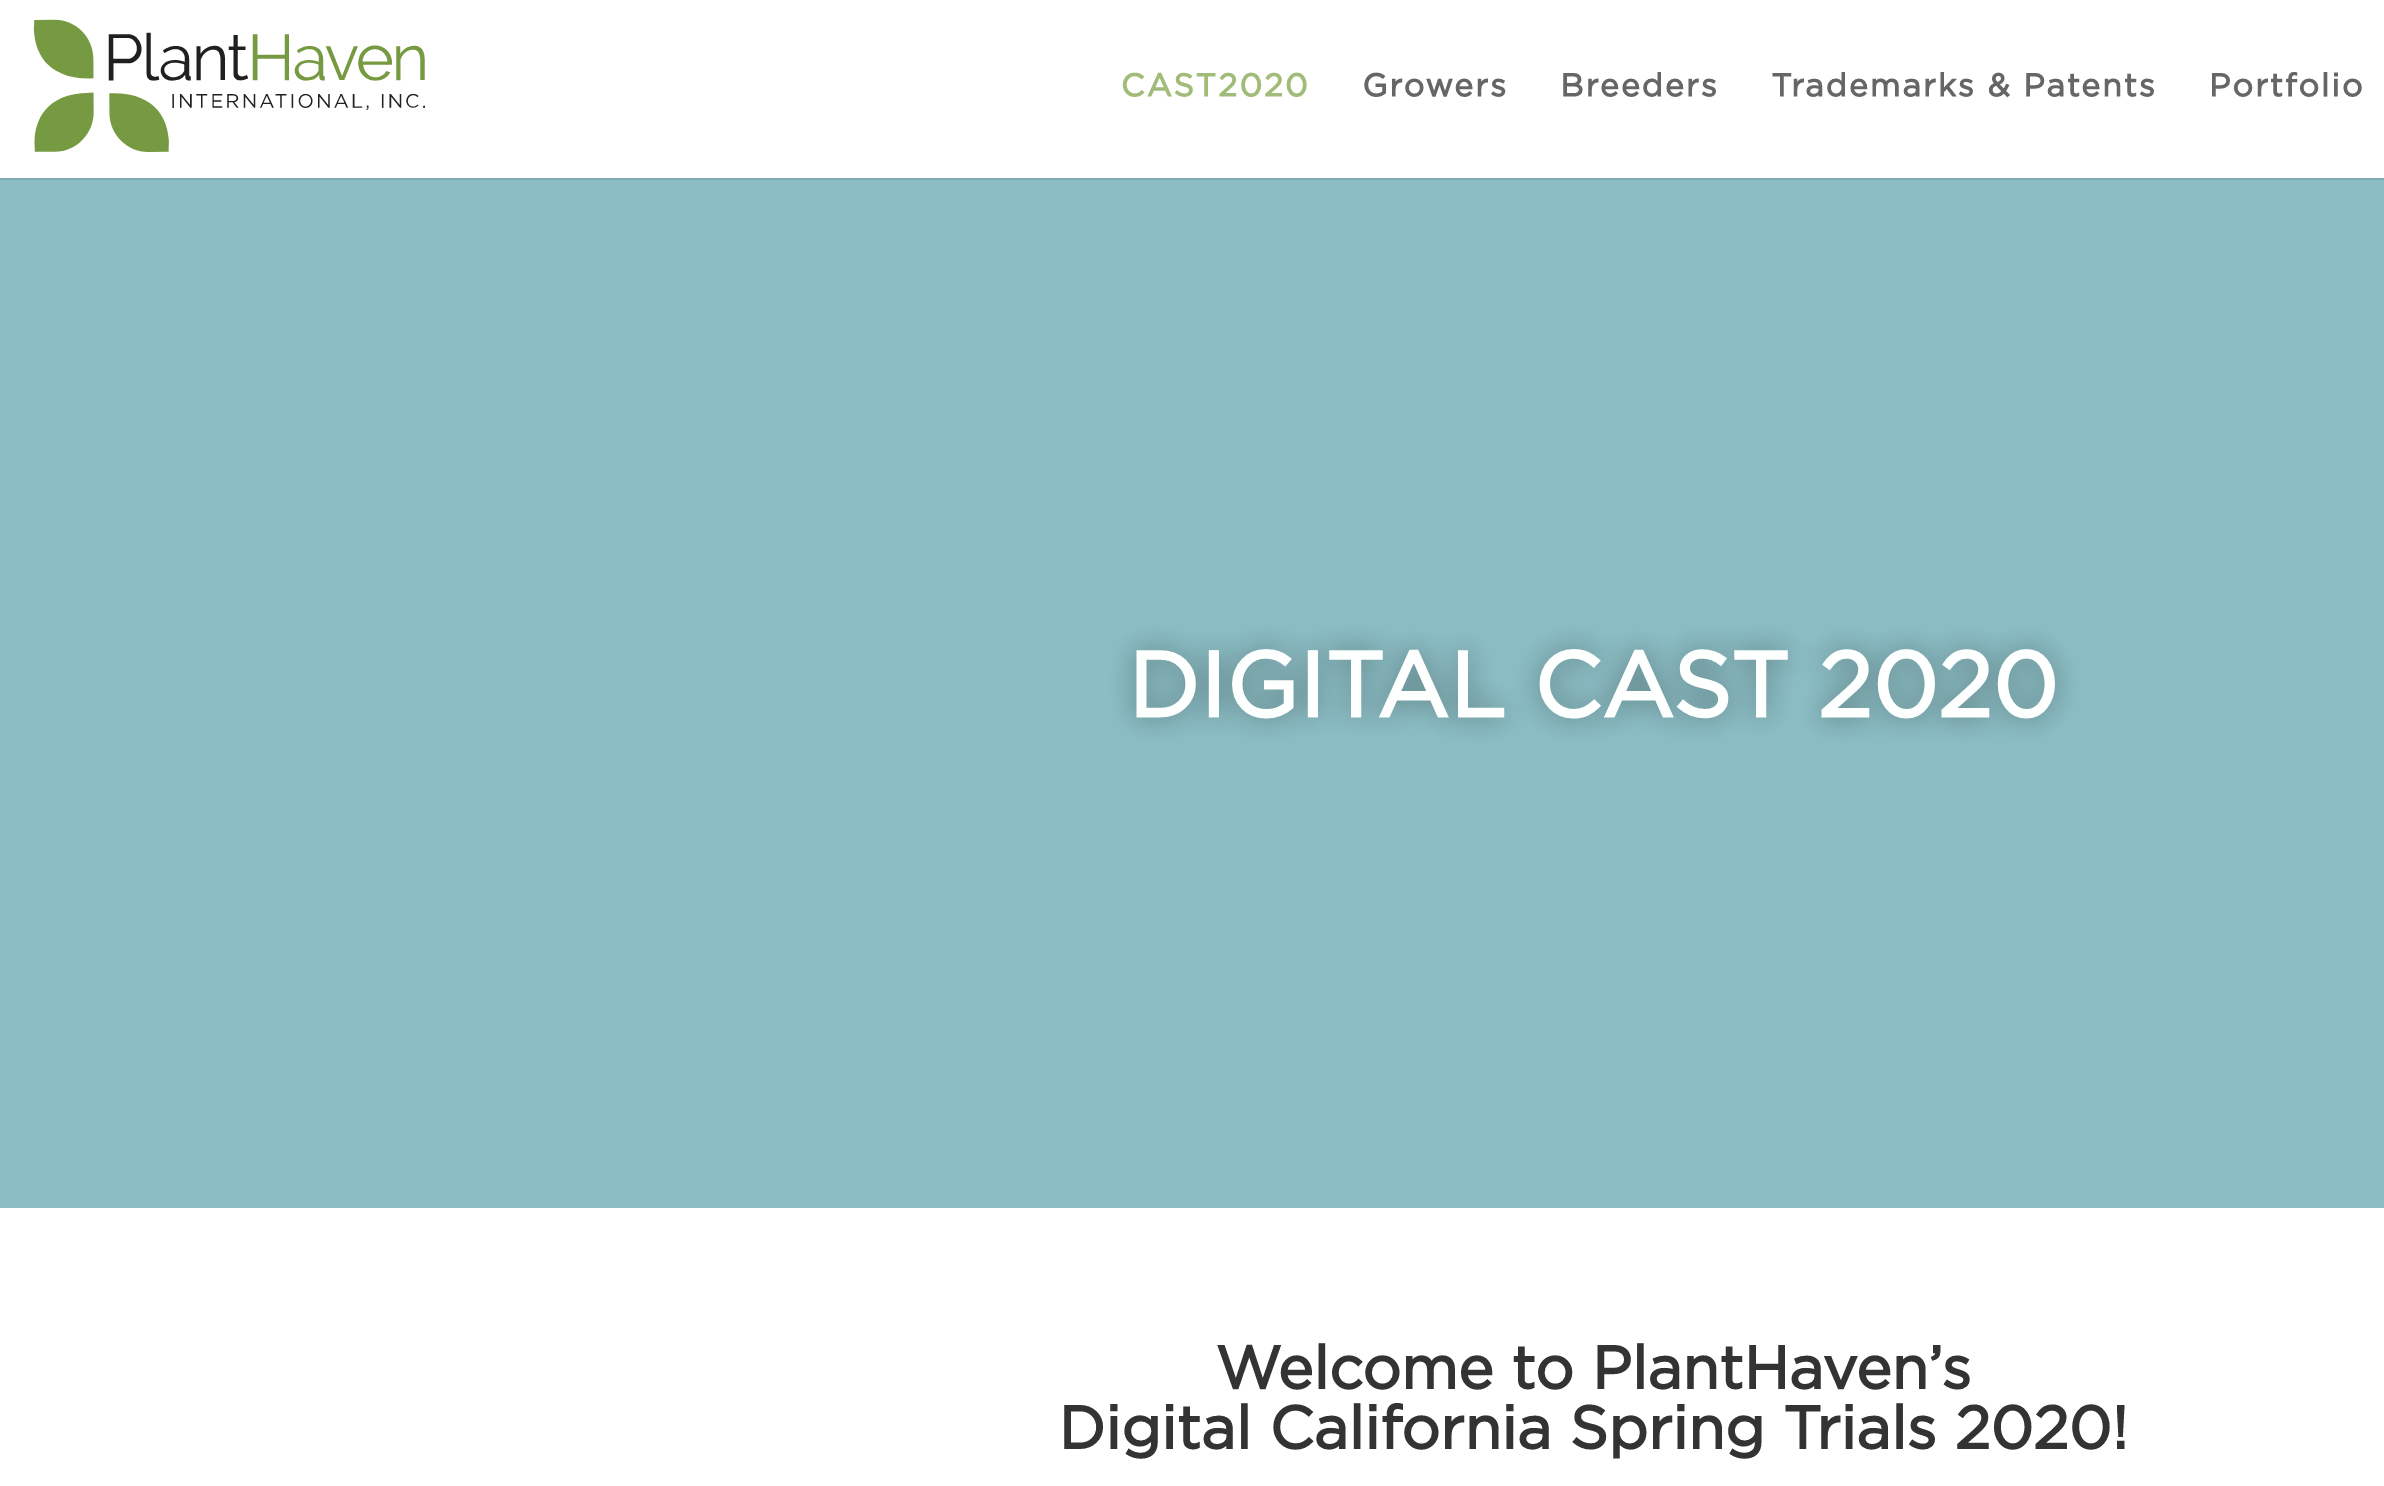 PlanHaven Digital Cast 2020